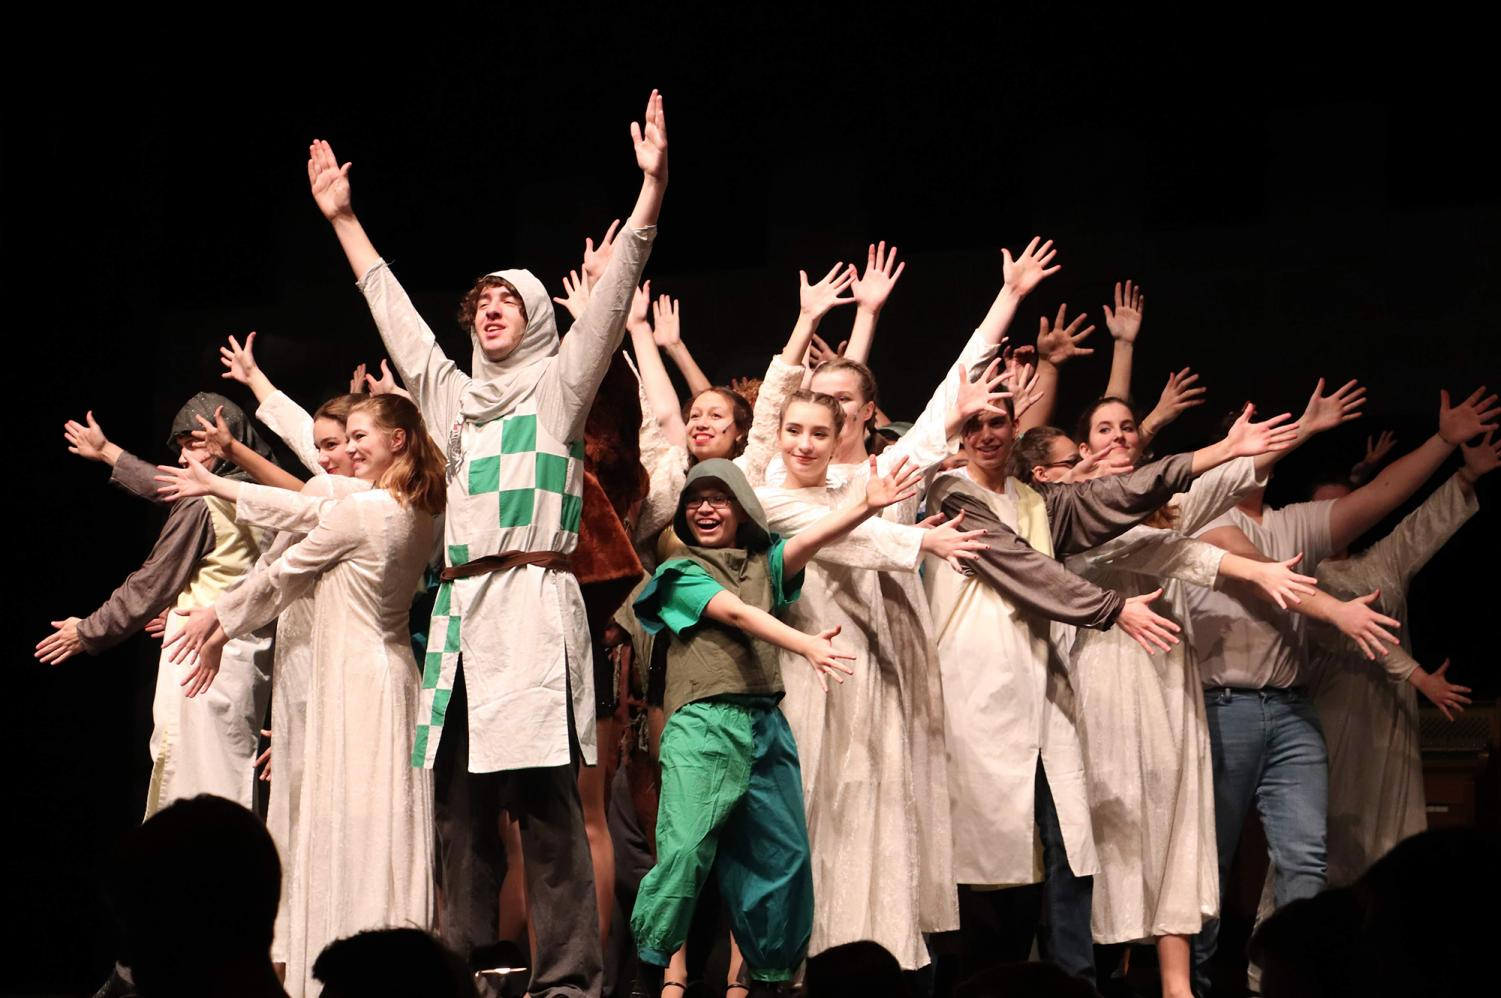 Arms+outstretched%2C+junior+Noah+Stussie+stands+front+and+center+during+the+finale+of+his+song+%22You+Won%27t+Succeed+on+Broadway+if+You+Don%27t+Have+Any+Jews%2C%22+during+the+winter+musical%2C+Monty+Python%27s+Spamalot%2C+on+Jan.+25.